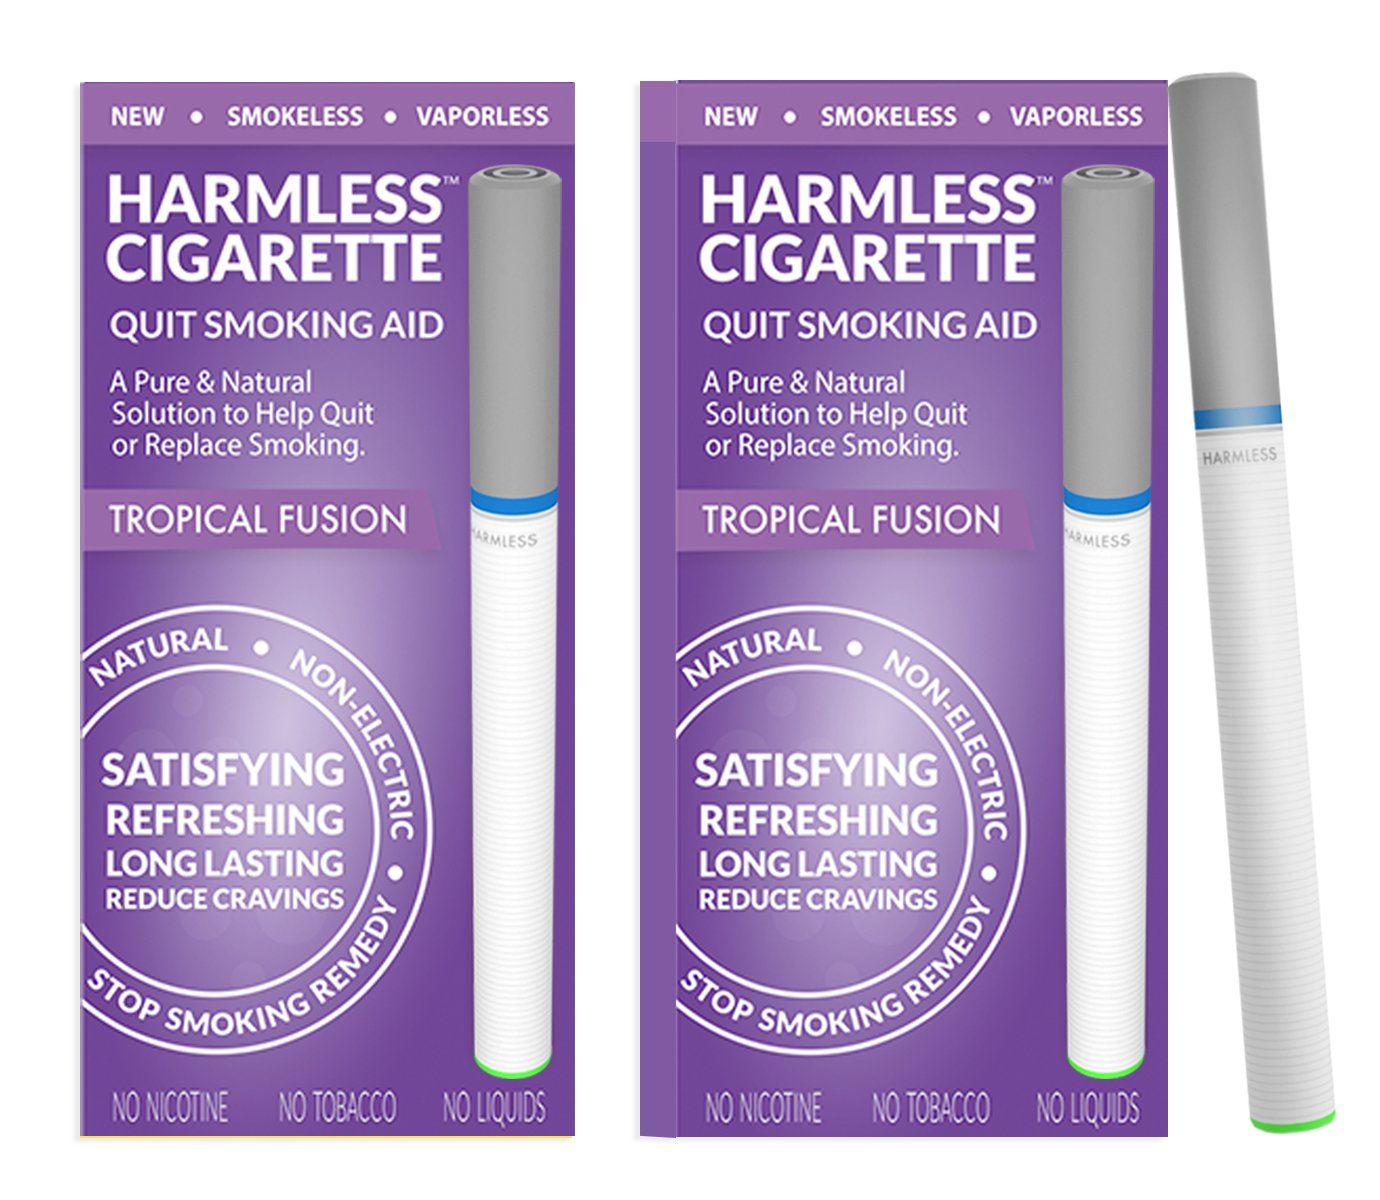 Harmless Cigarette/Stop Smoking Aid/4 Week Quit Kit/Includes FREE Quit Smoking Support Guide (2 Pack, Tropical Fusion)